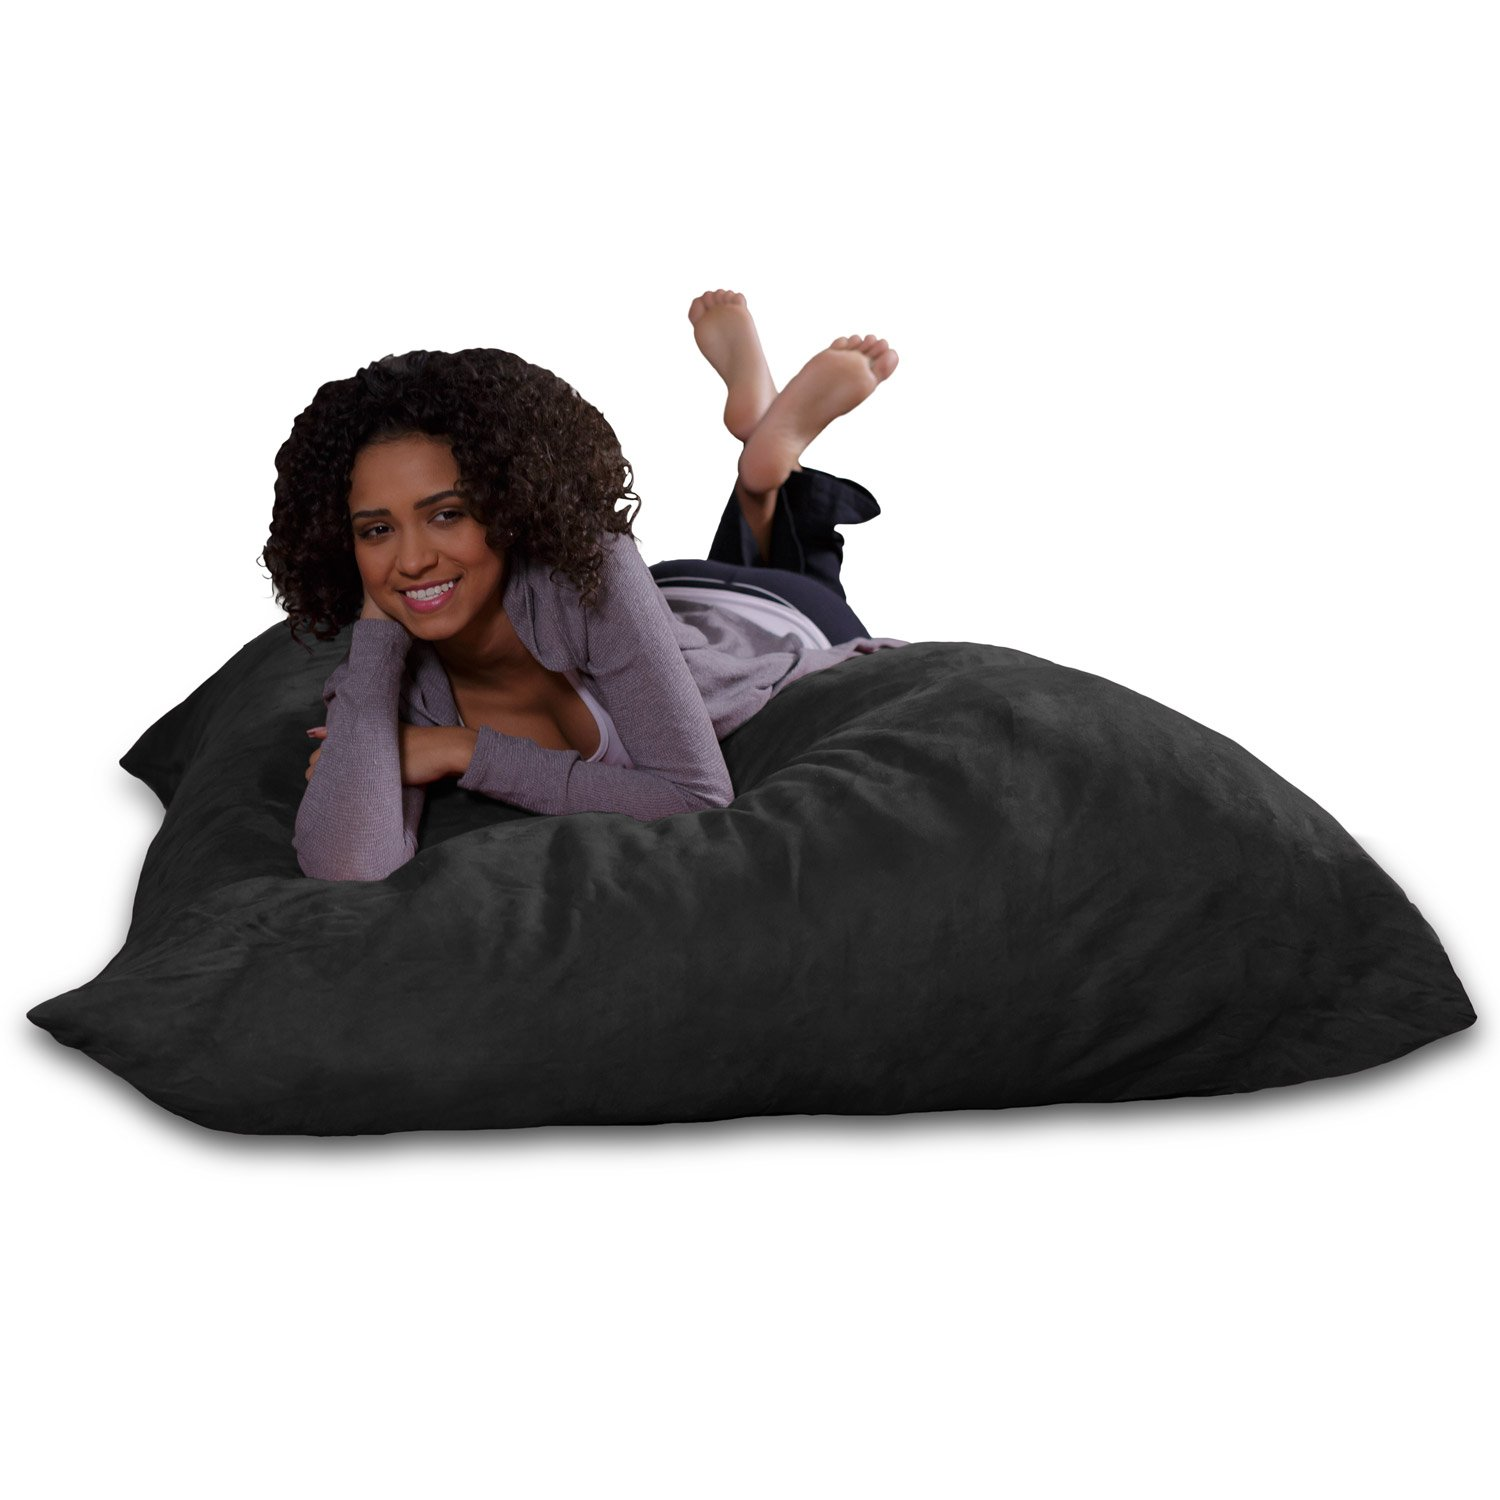 Sofa Sack - Plush, Ultra Soft Bean Bag Chair - Memory Foam Bean Bag Chair with Microsuede Cover - Stuffed Foam Filled Furniture and Accessories for Dorm Room - Charcoal by Sofa Sack - Bean Bags